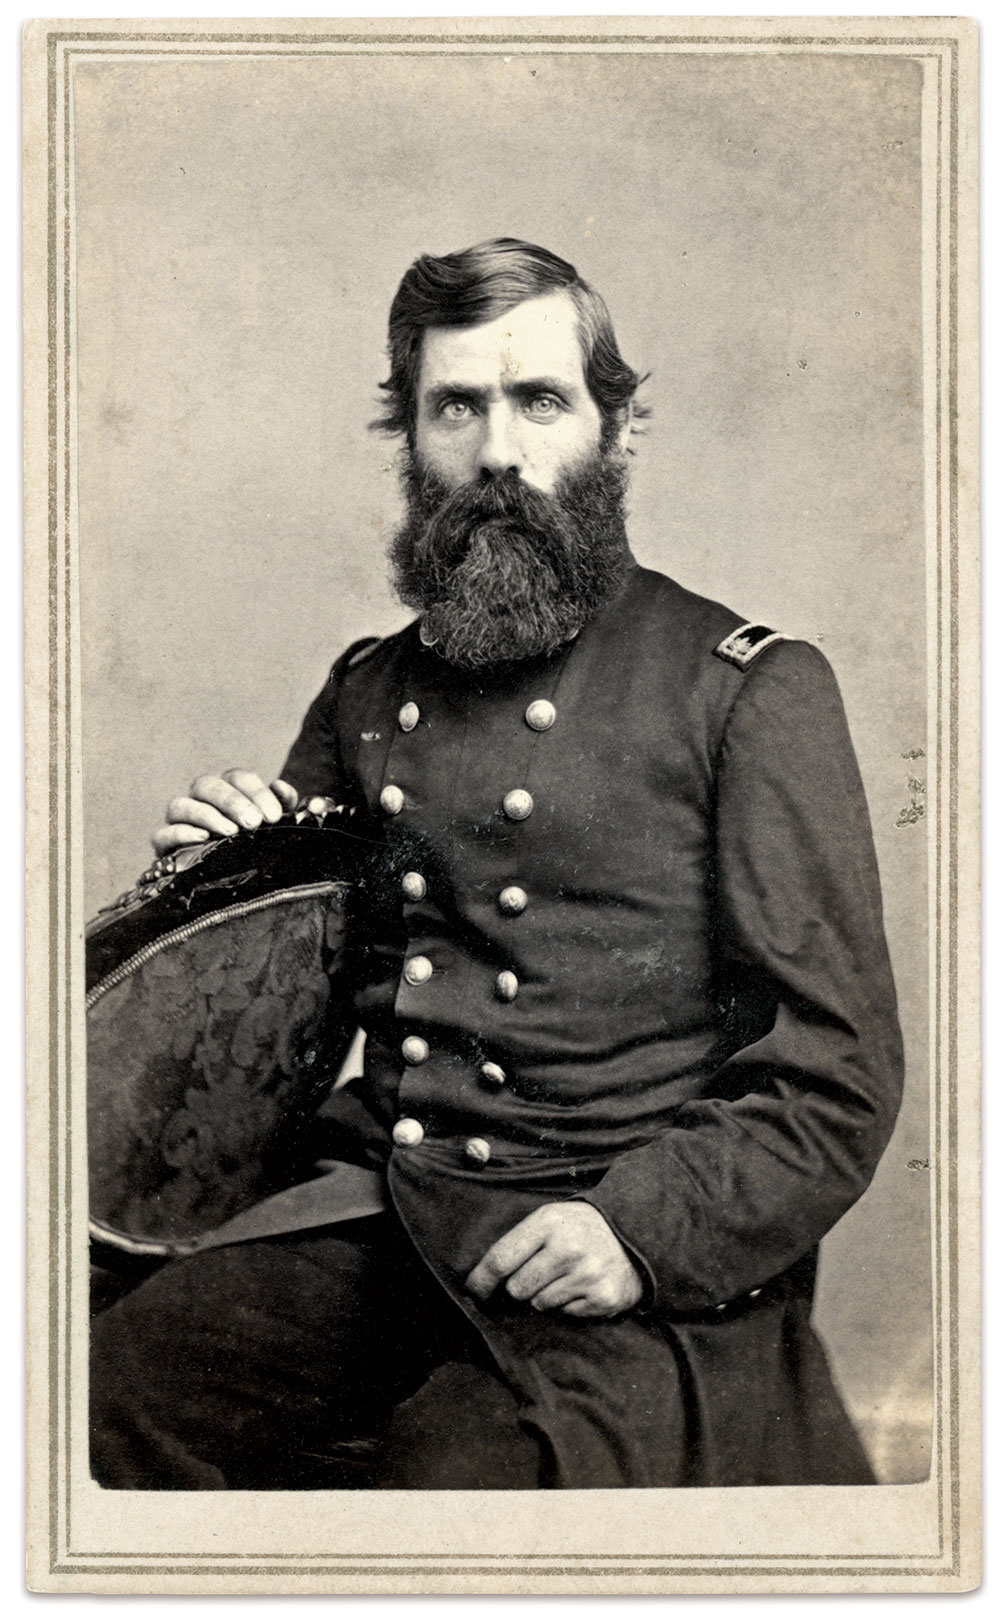 Unidentified Union field officer. Carte de visite by C. C. Rowell of Newport, N.H. Kurt Luther Collection.